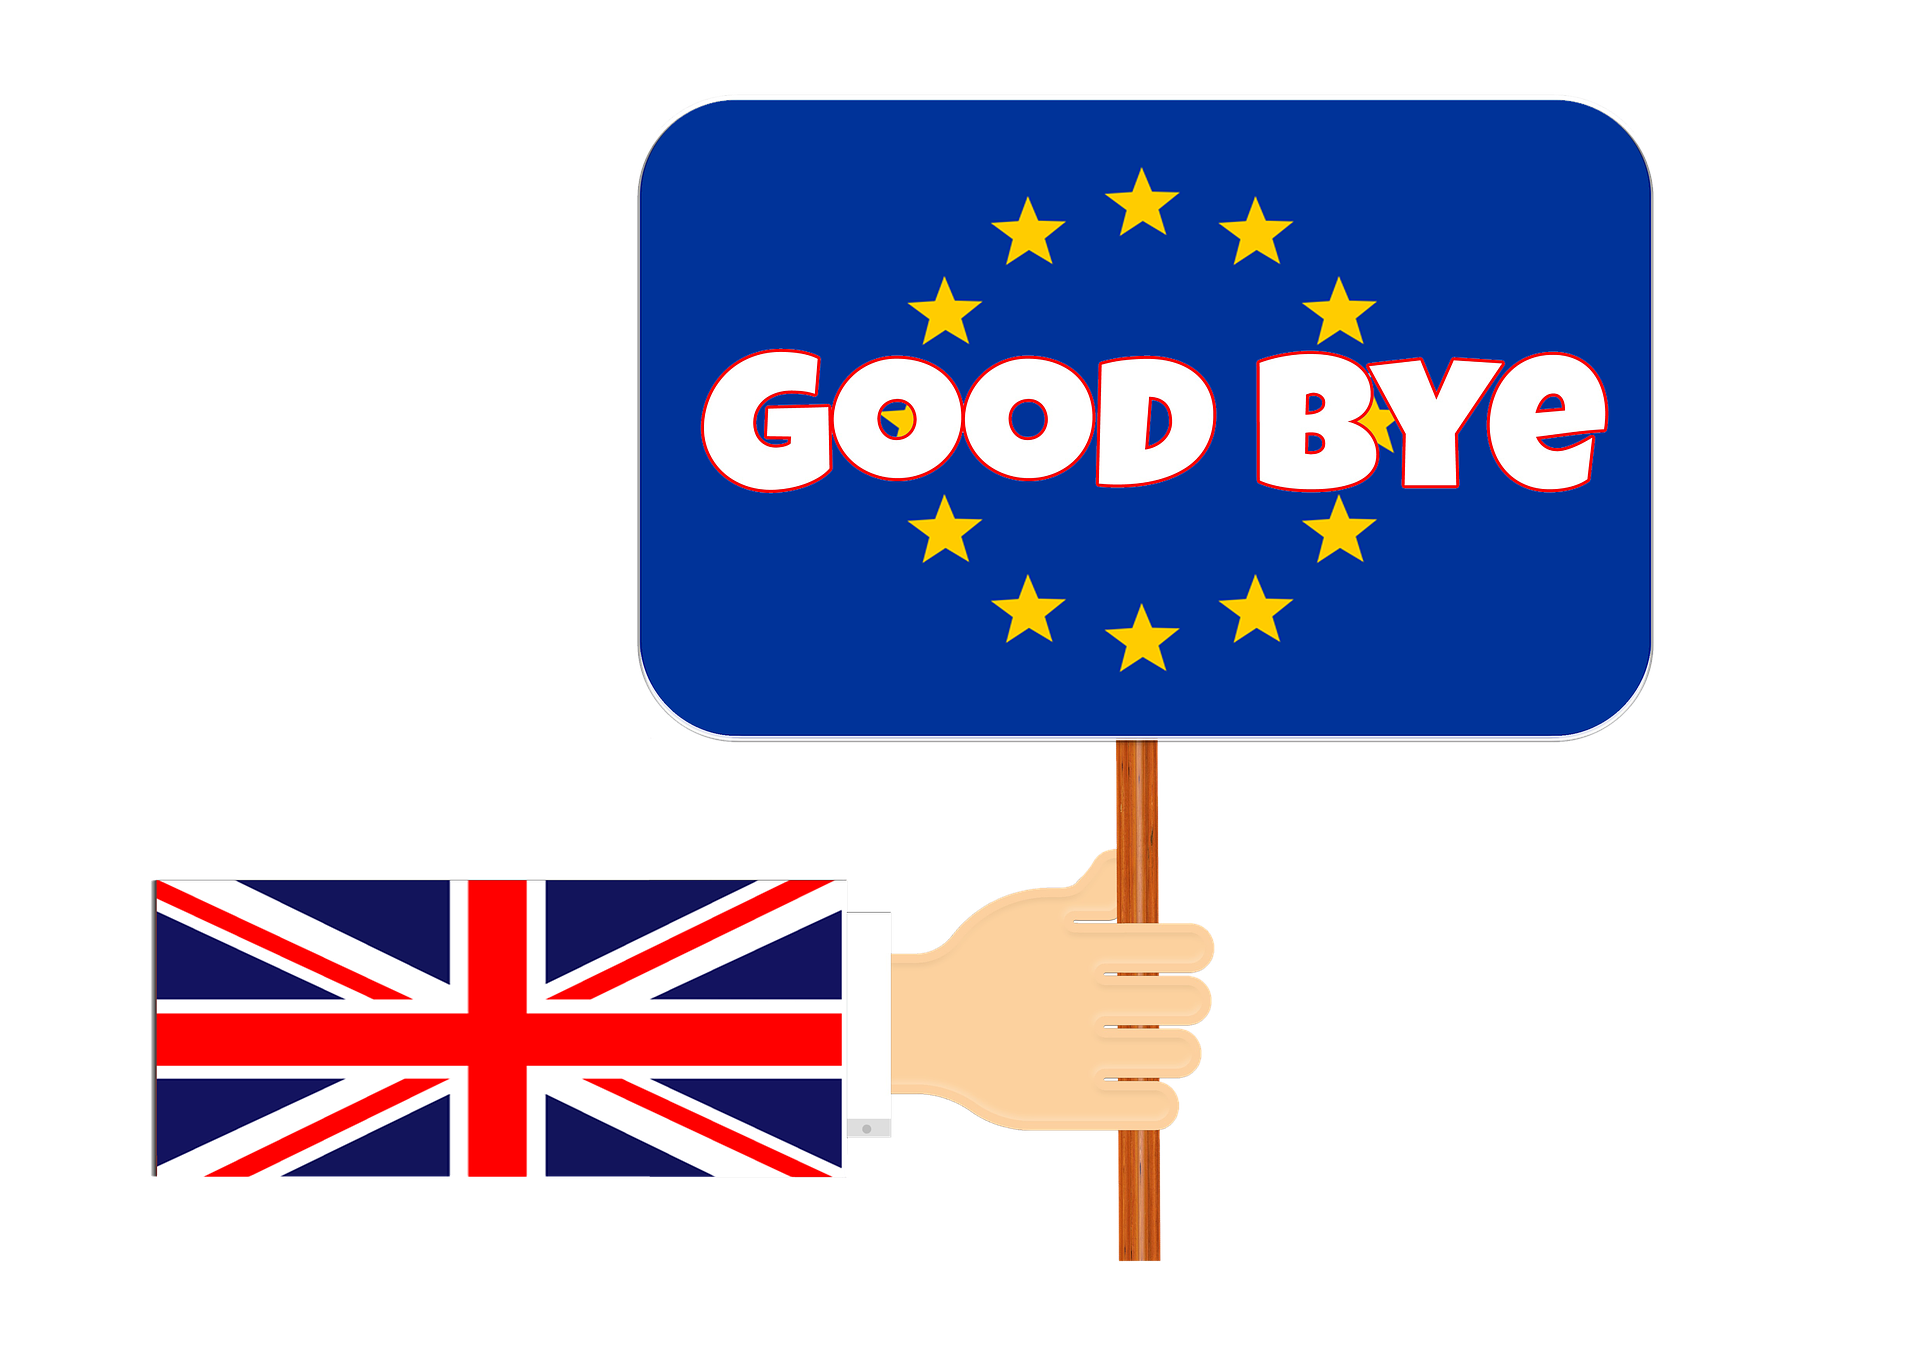 To Brexit, or not to Brexit (title). Credit: Inspired Images